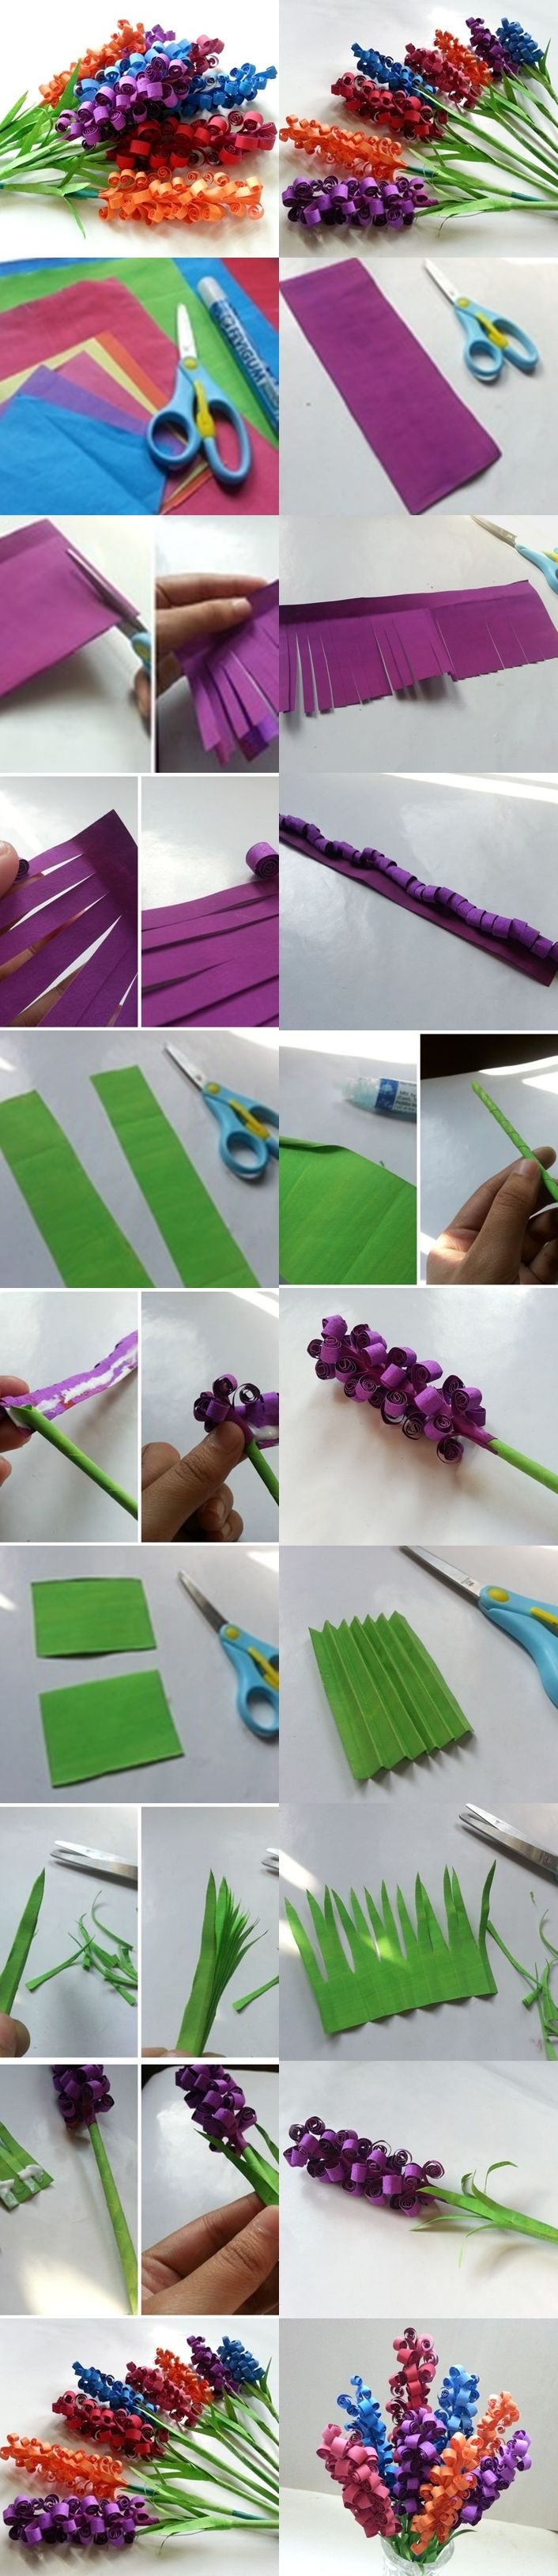 DIY Swirly Paper Flowers look really cute.